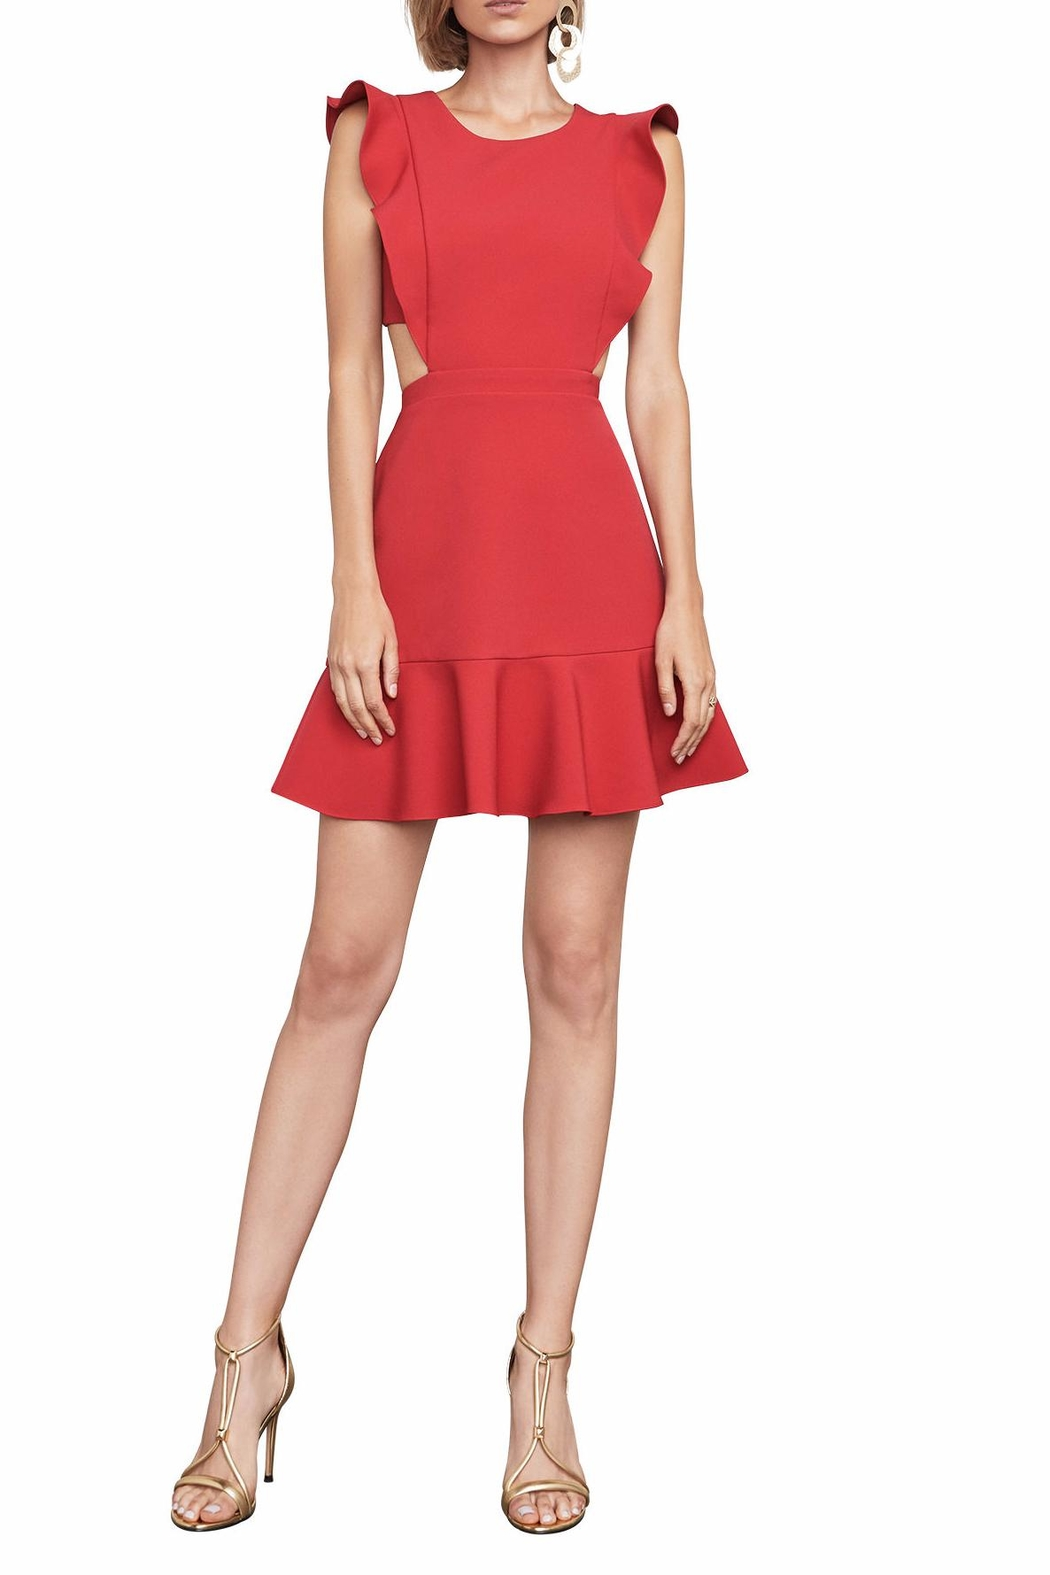 BCBG Max Azria Nicole Cutout Dress - Main Image